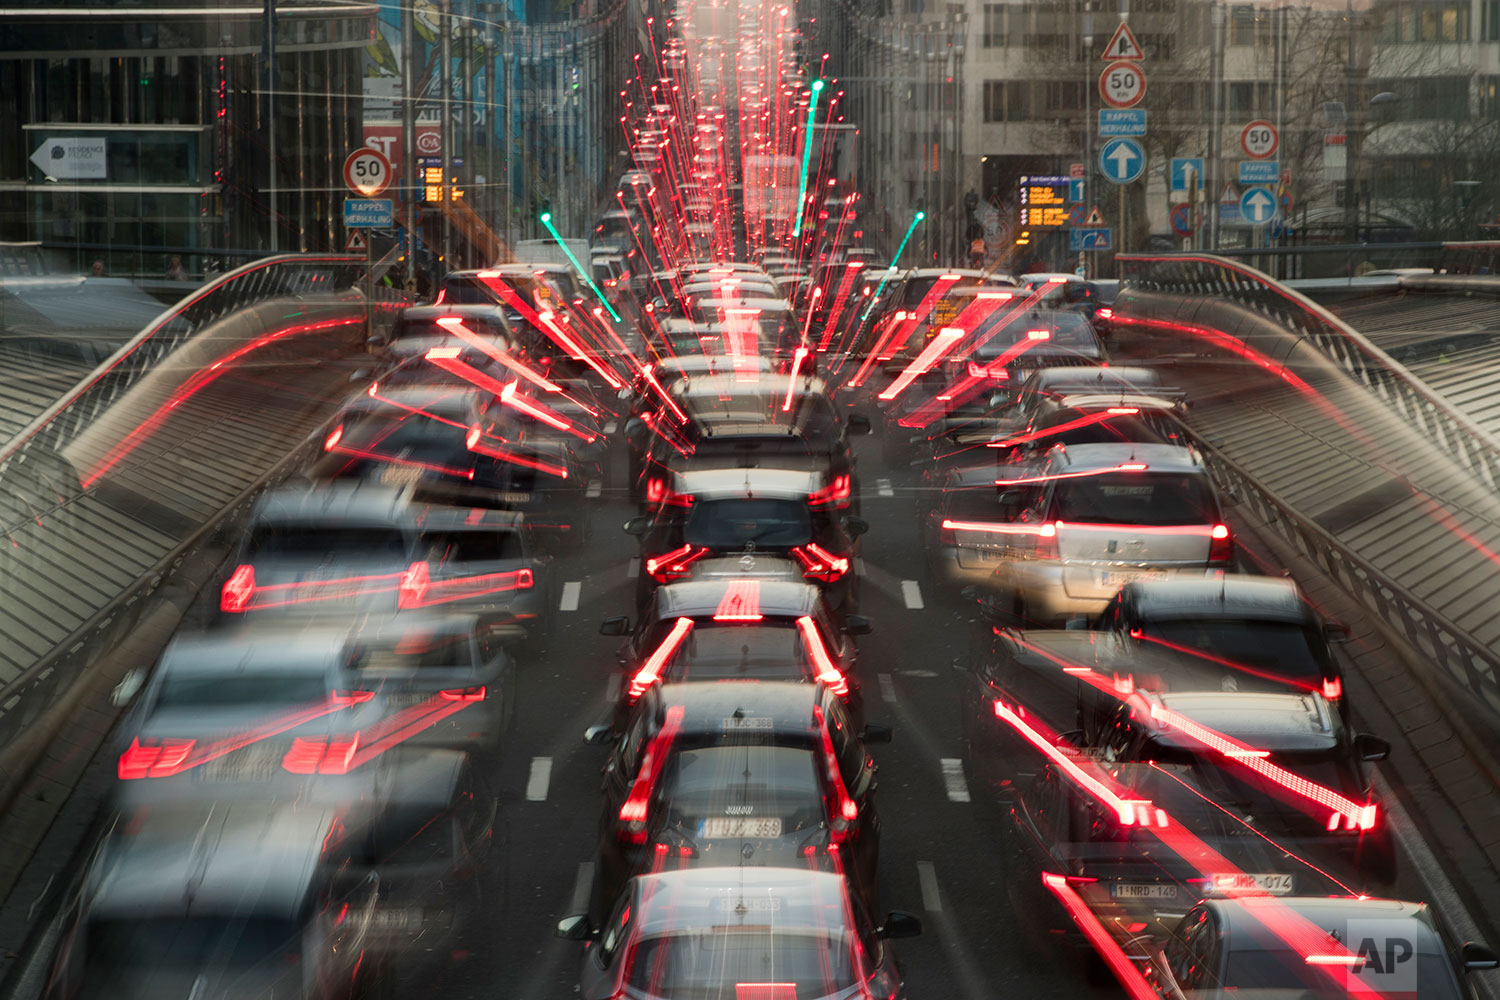 In this slow-shutter zoom effect photo taken on Wednesday, Dec. 12, 2018, commuters are backed up in traffic during the morning rush hour, in Brussels, a city that regularly experiences pollution alert warnings. (AP Photo/Francisco Seco)